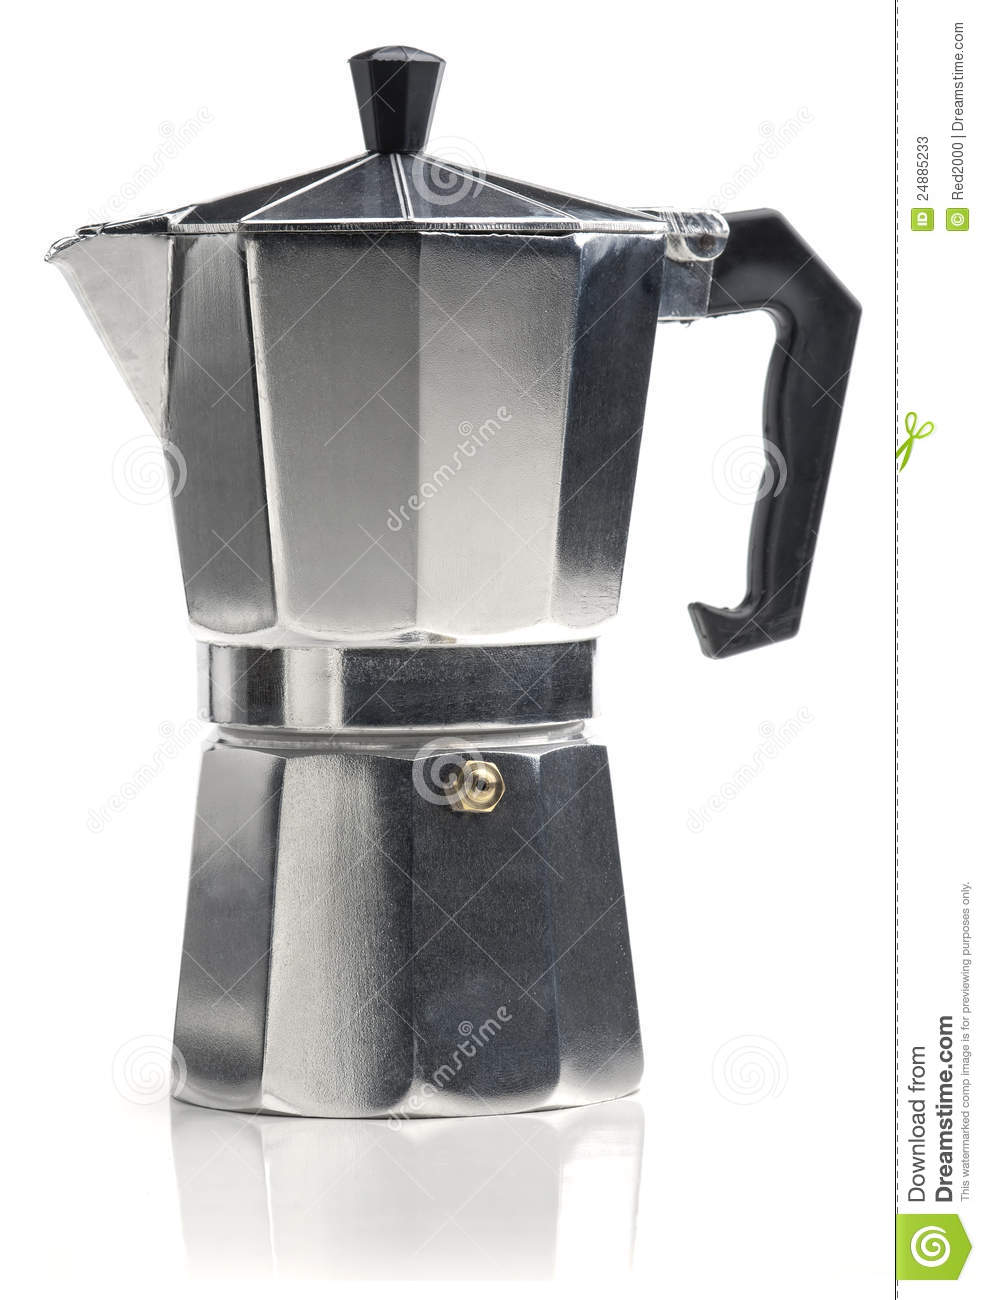 Map Italian Coffee Maker : Coffee Maker Stock Photos - Image: 24885233